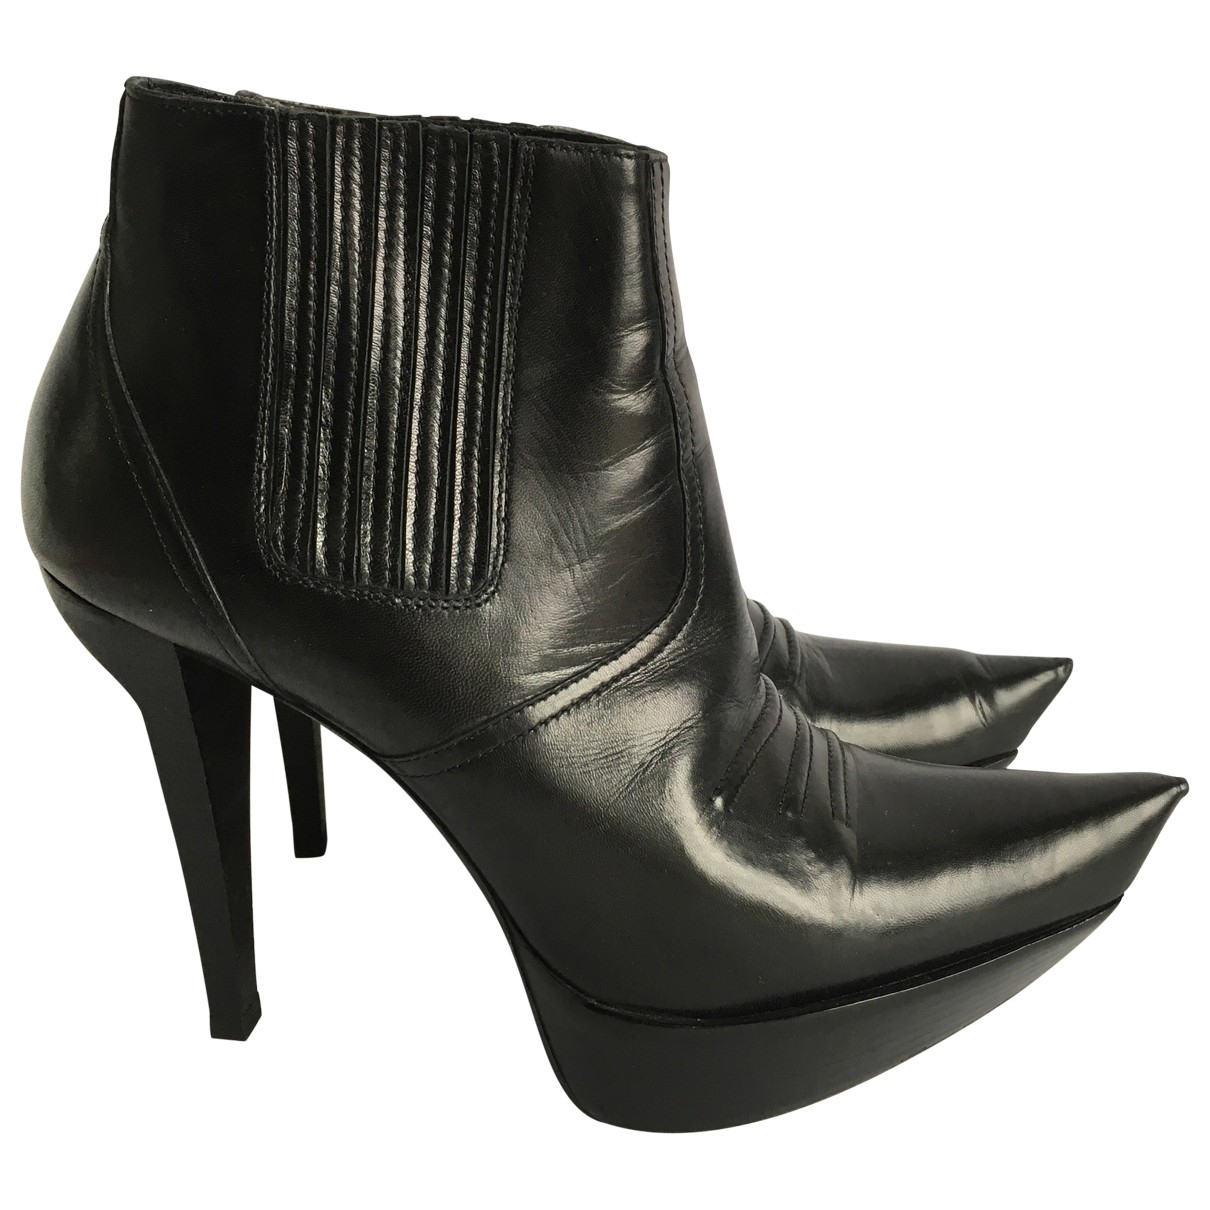 Balenciaga \N Black Leather Ankle boots for Women 40 EU